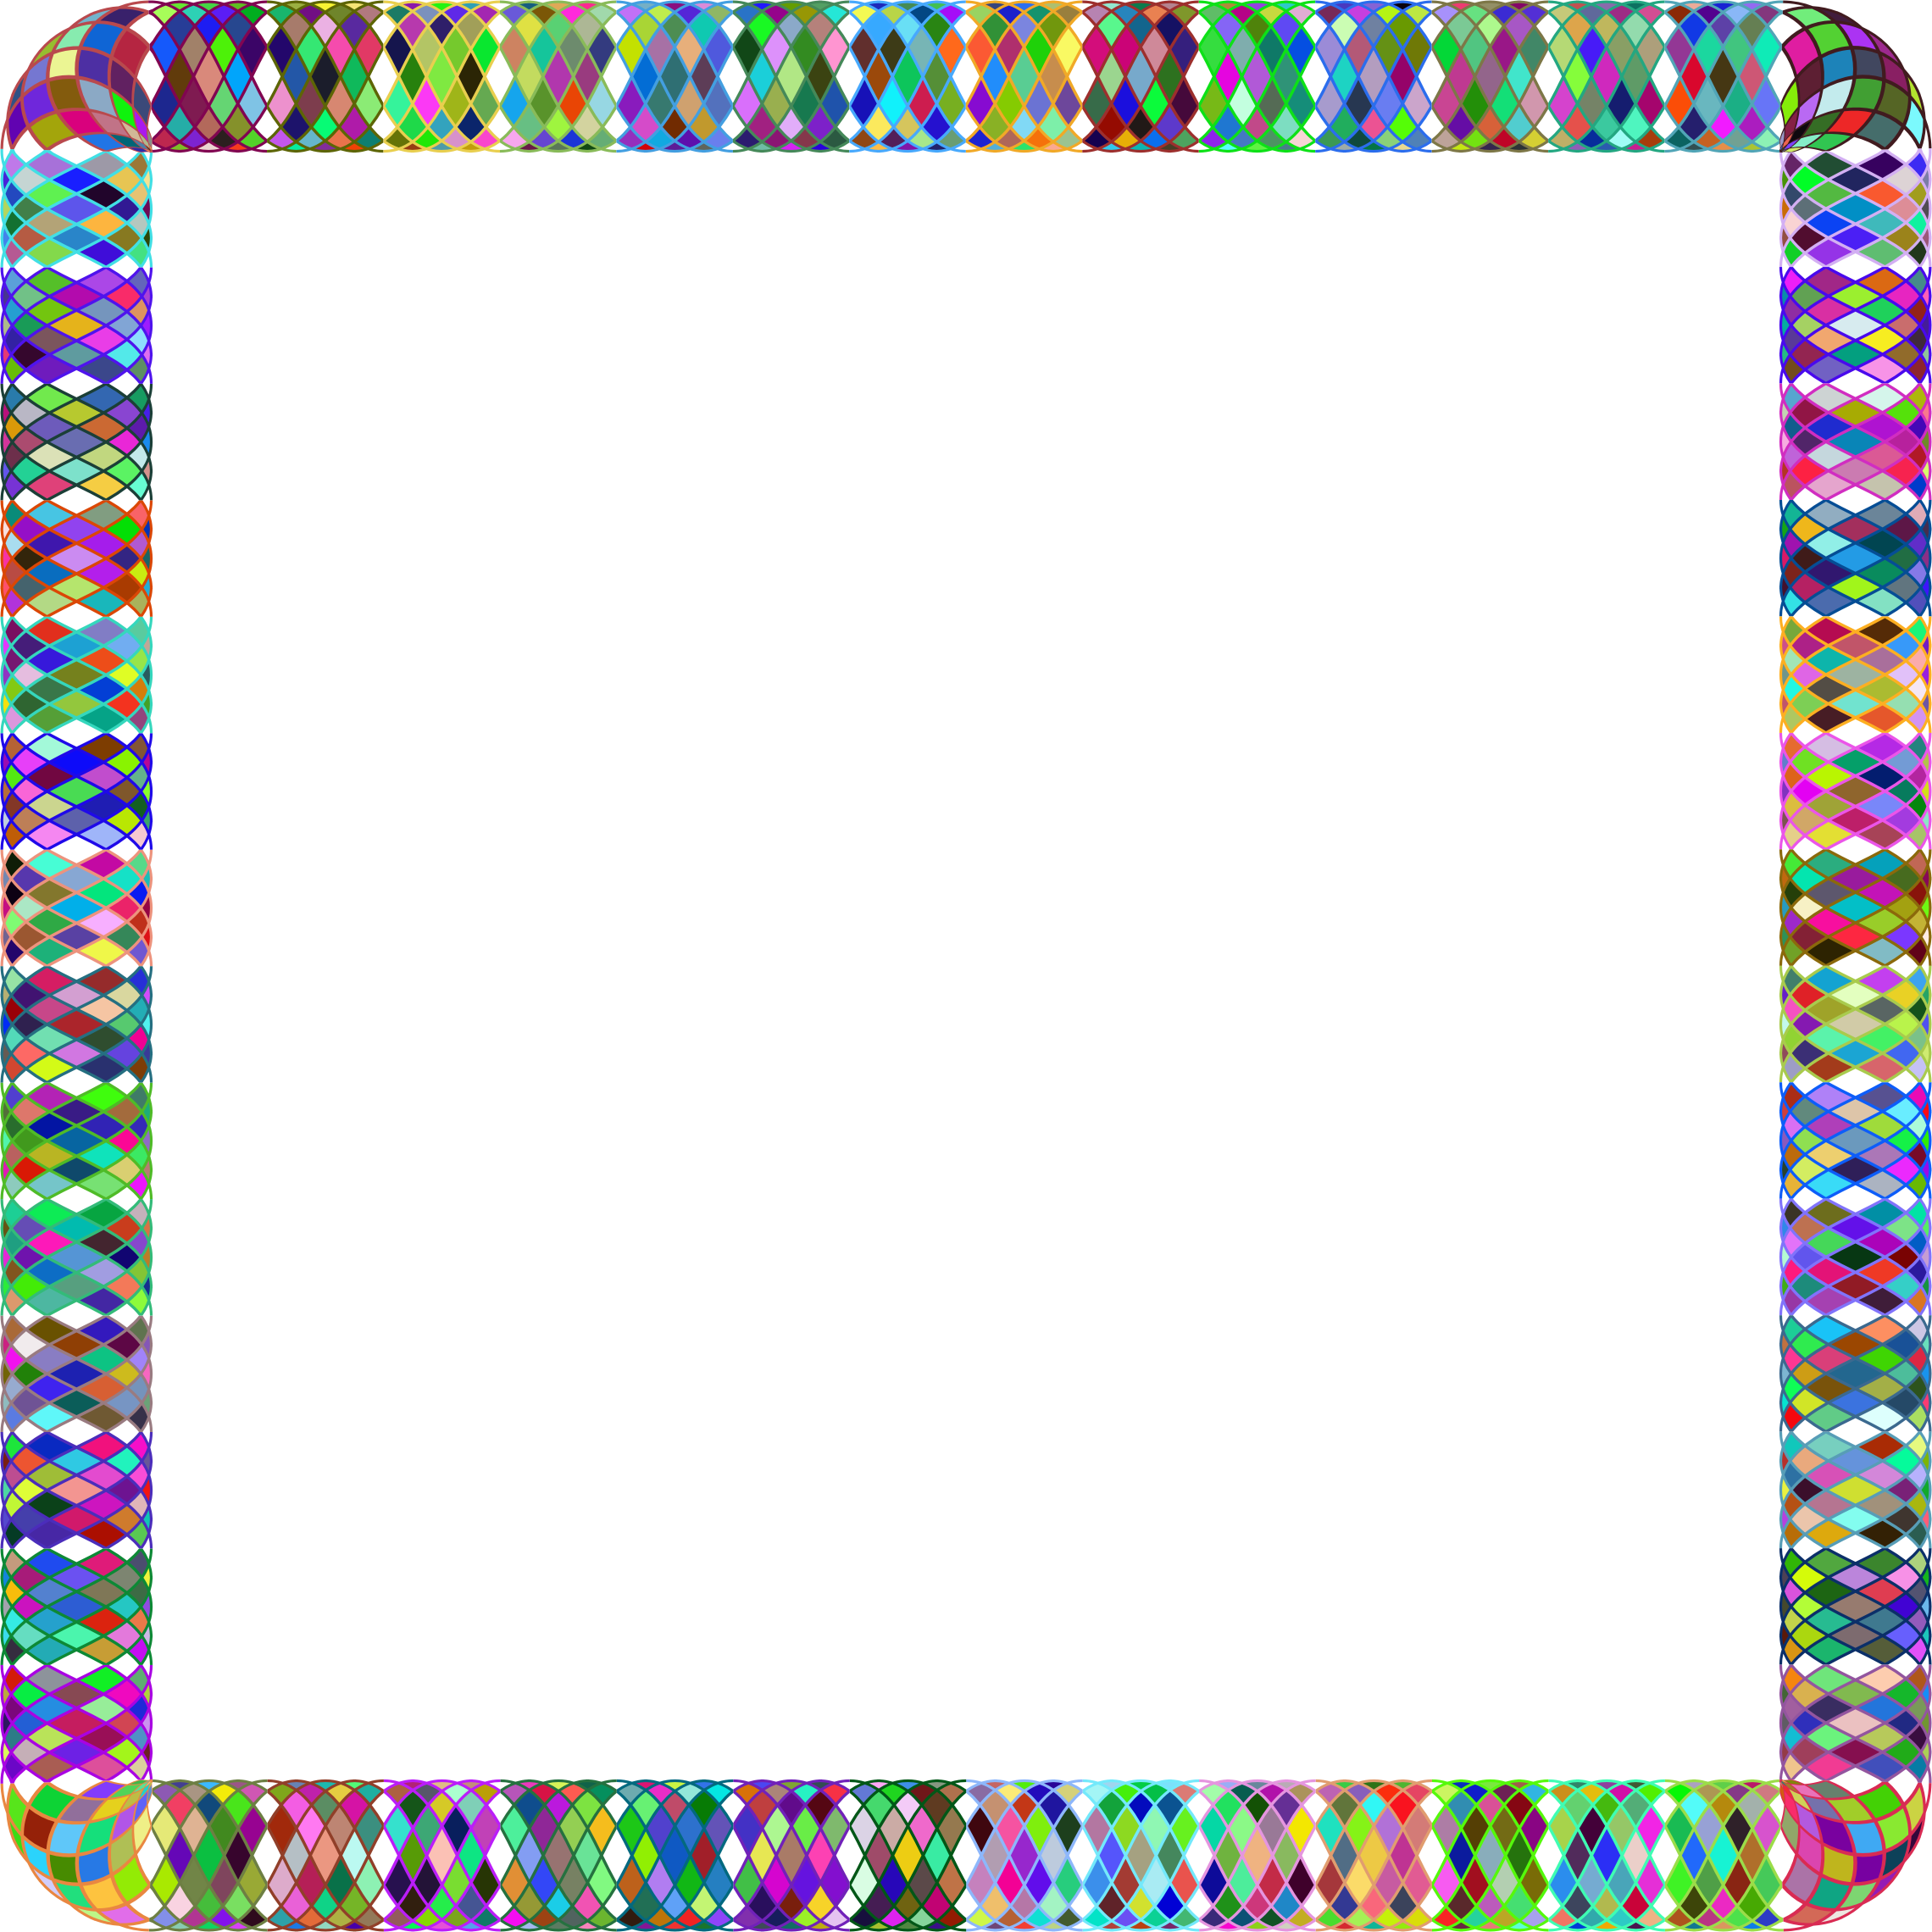 Prismatic Guilloche Frame 2 by GDJ